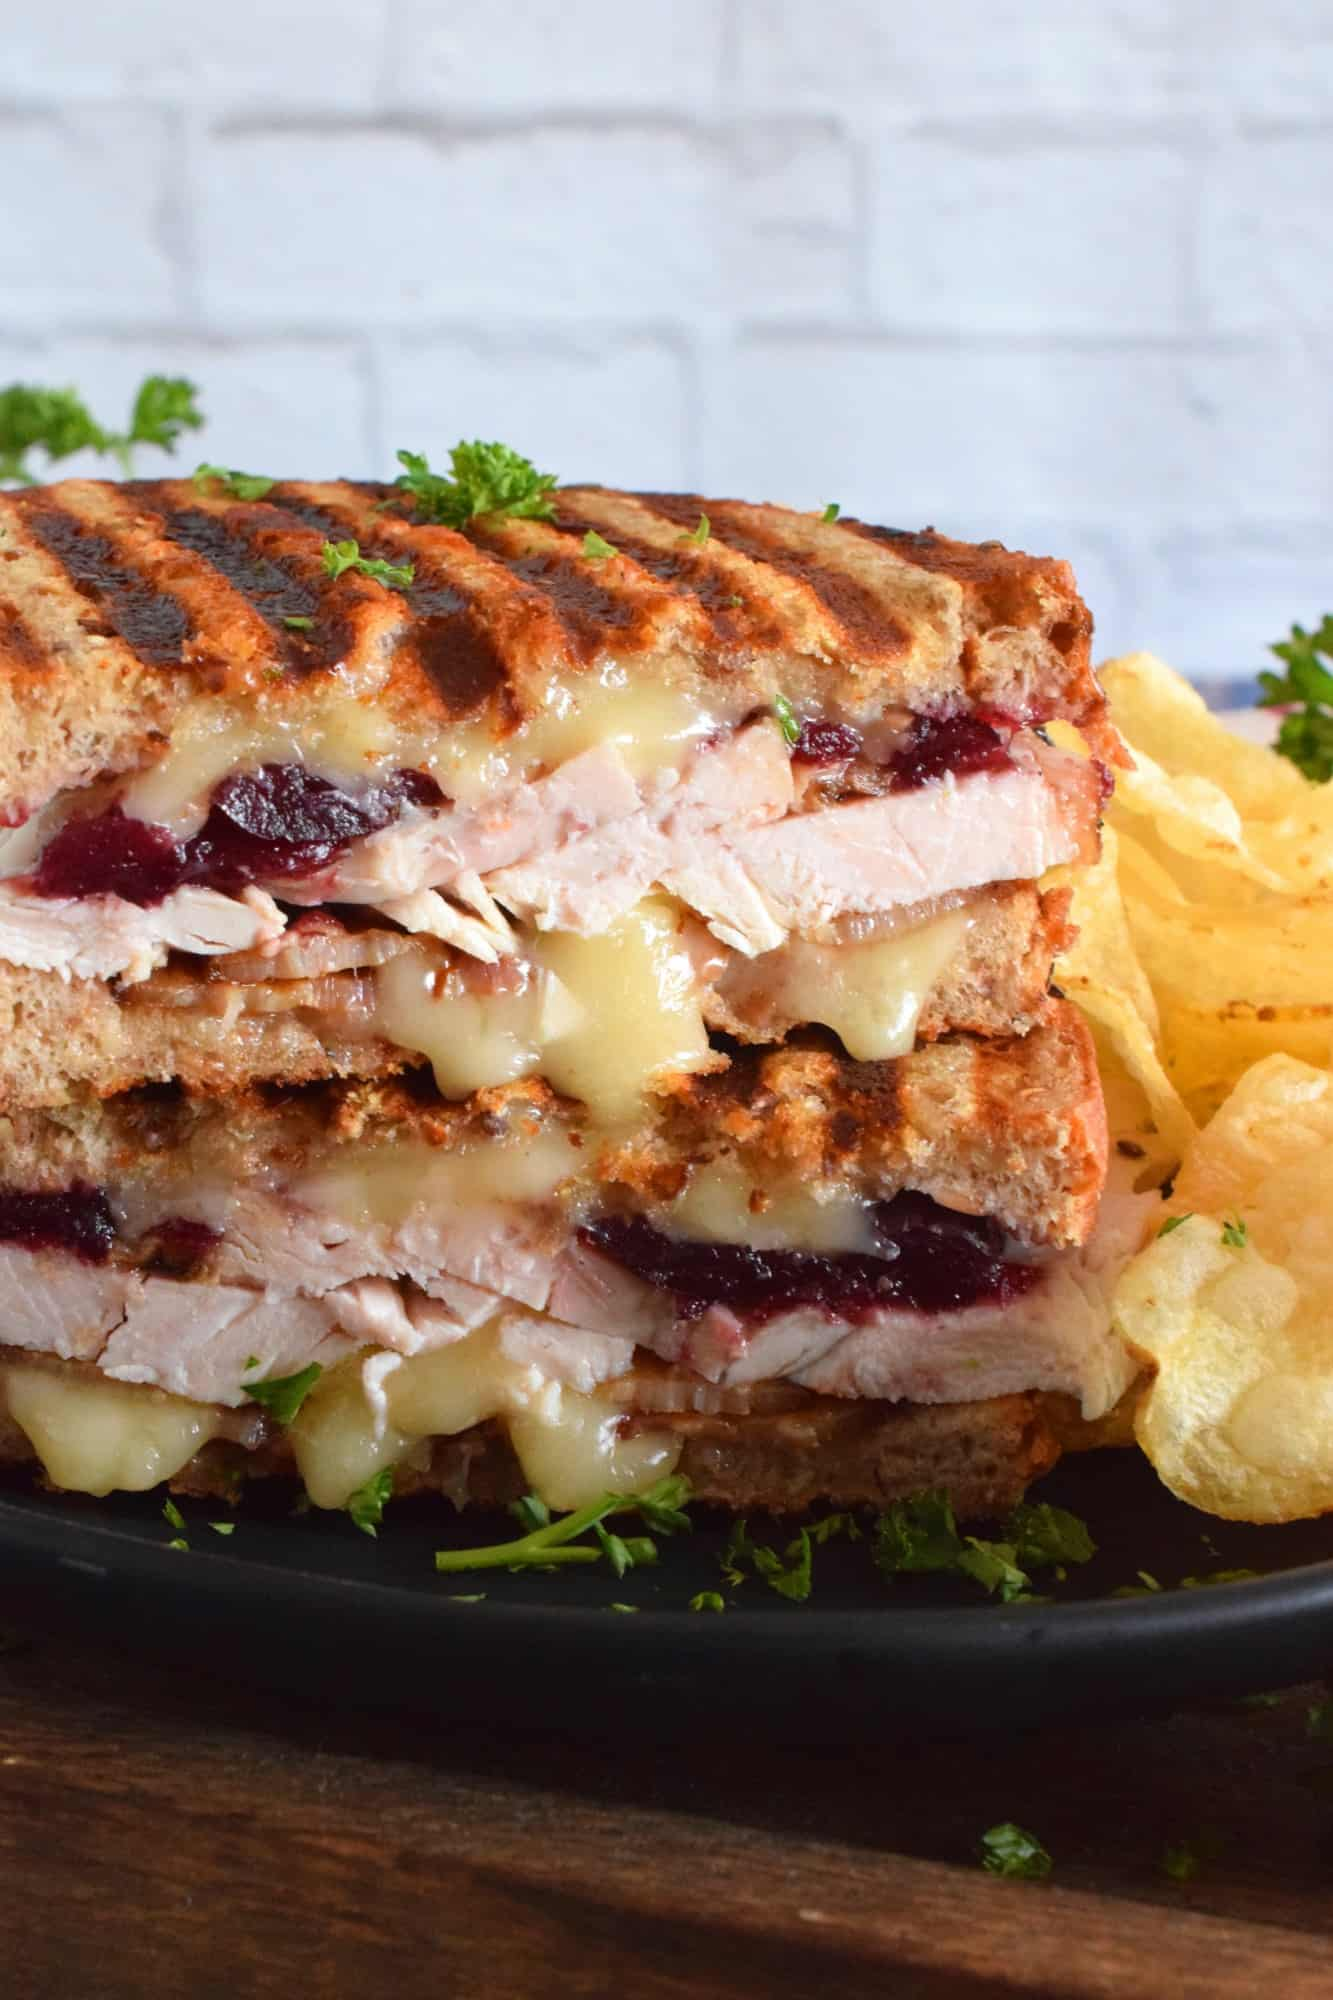 Bacon And Turkey Panini